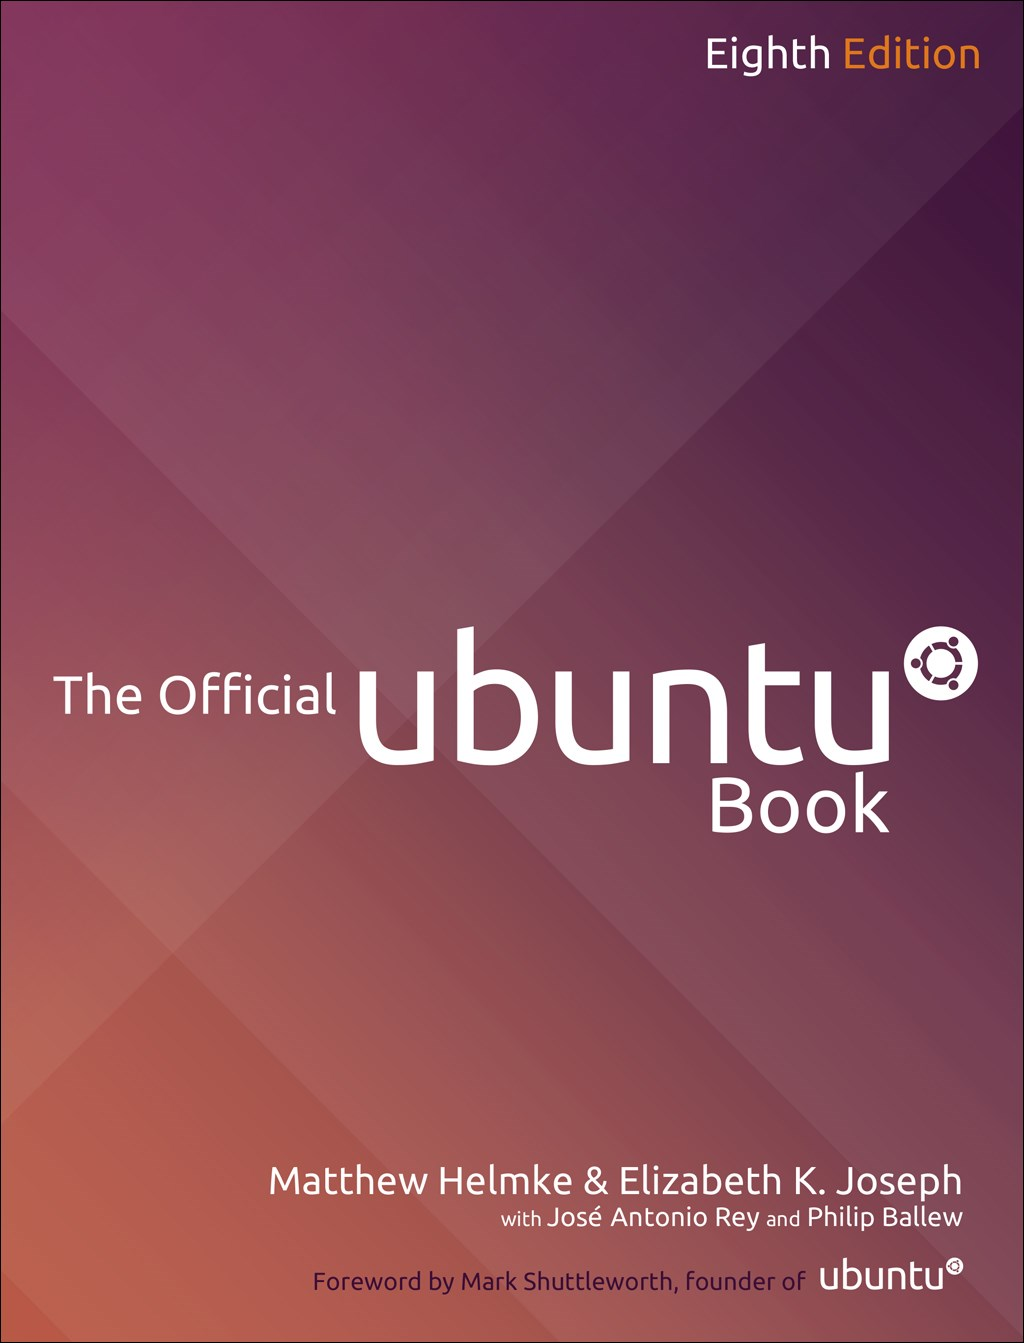 Official Ubuntu Book, The, 8th Edition